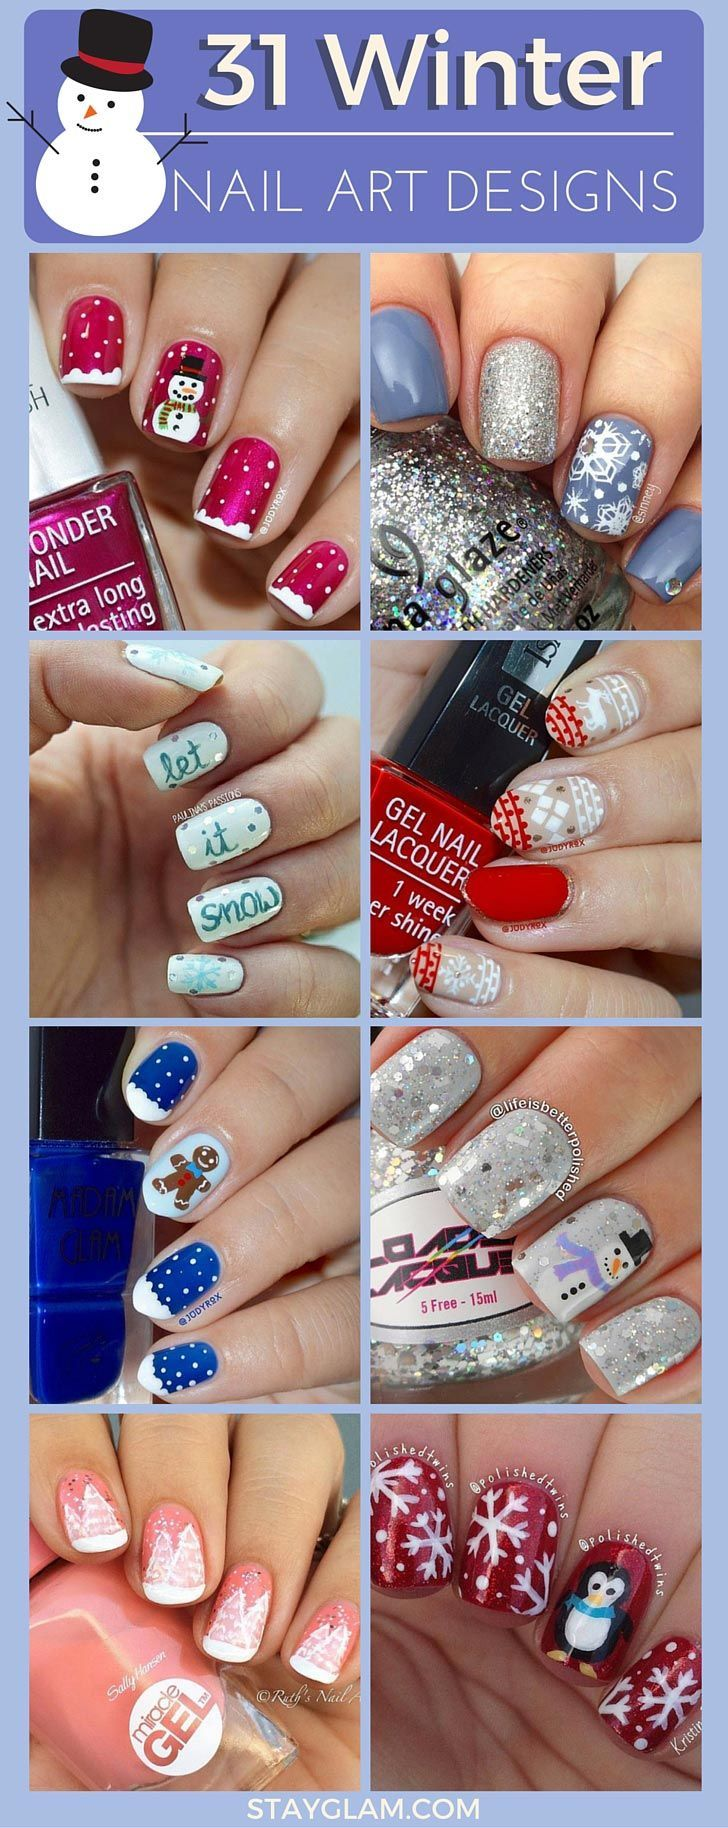 31 Cute Winter-Inspired Nail Designs Just In Time for the Holidays!